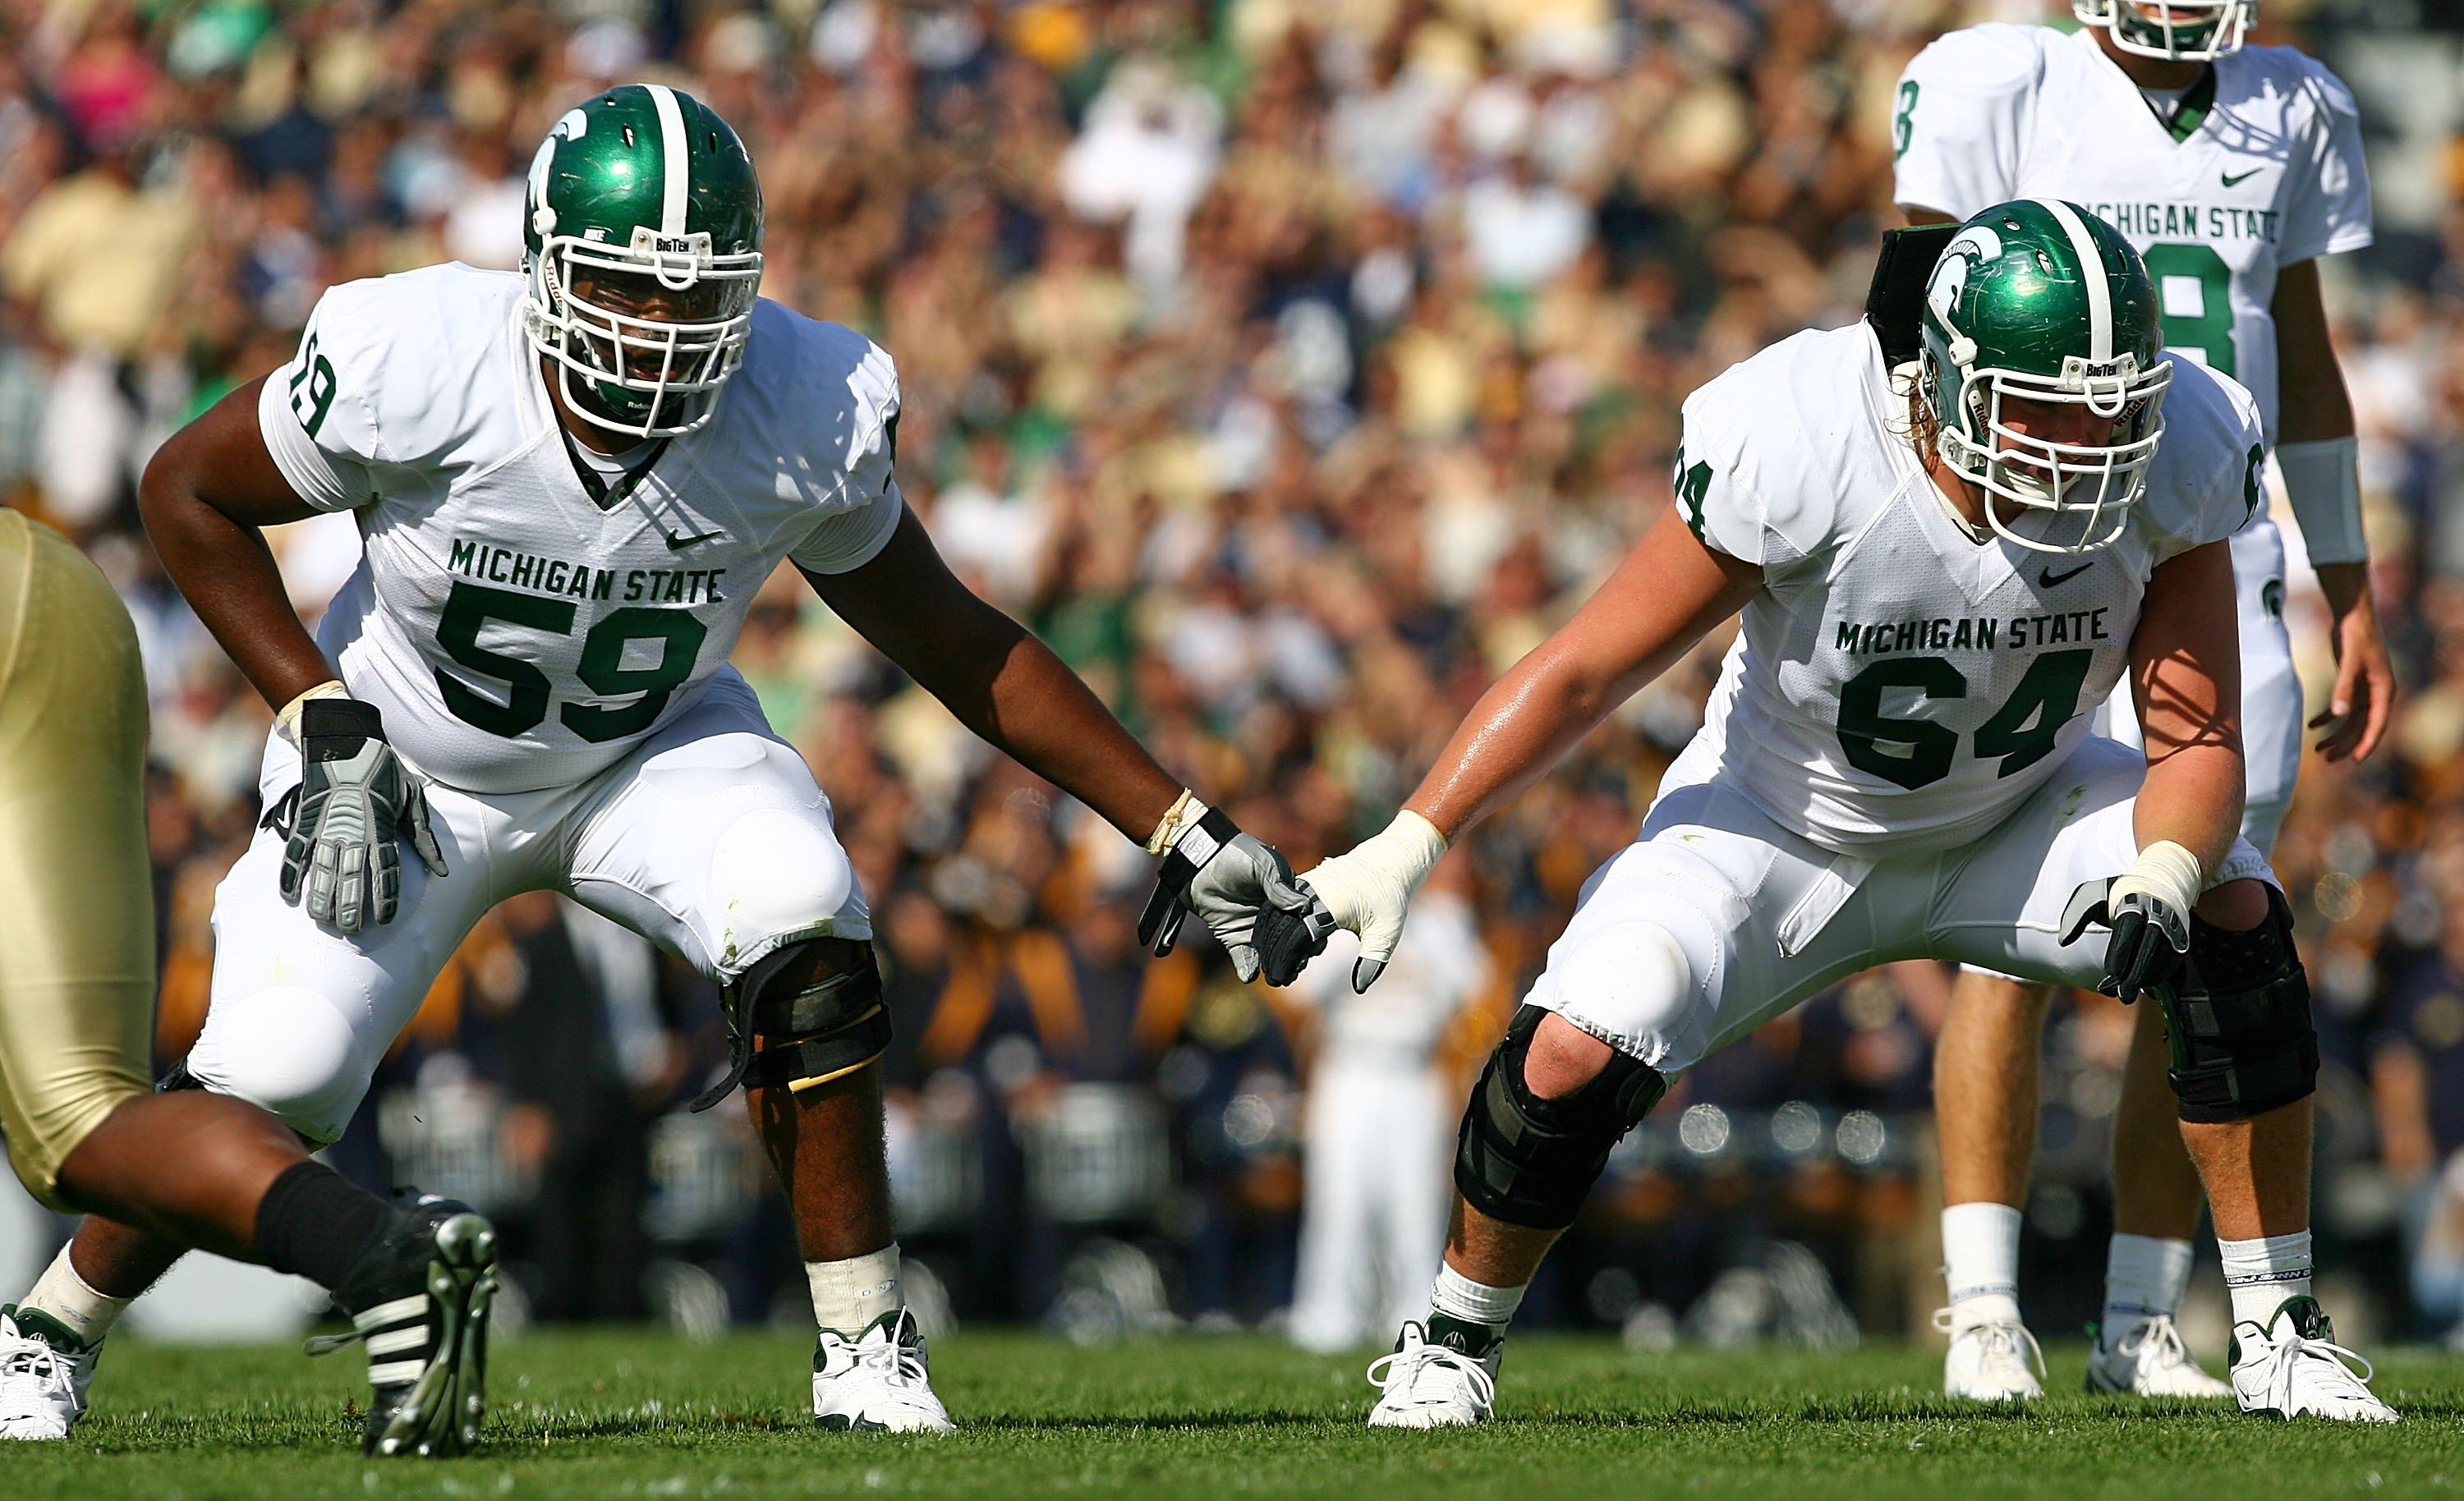 Michigan State OT D.J. Young